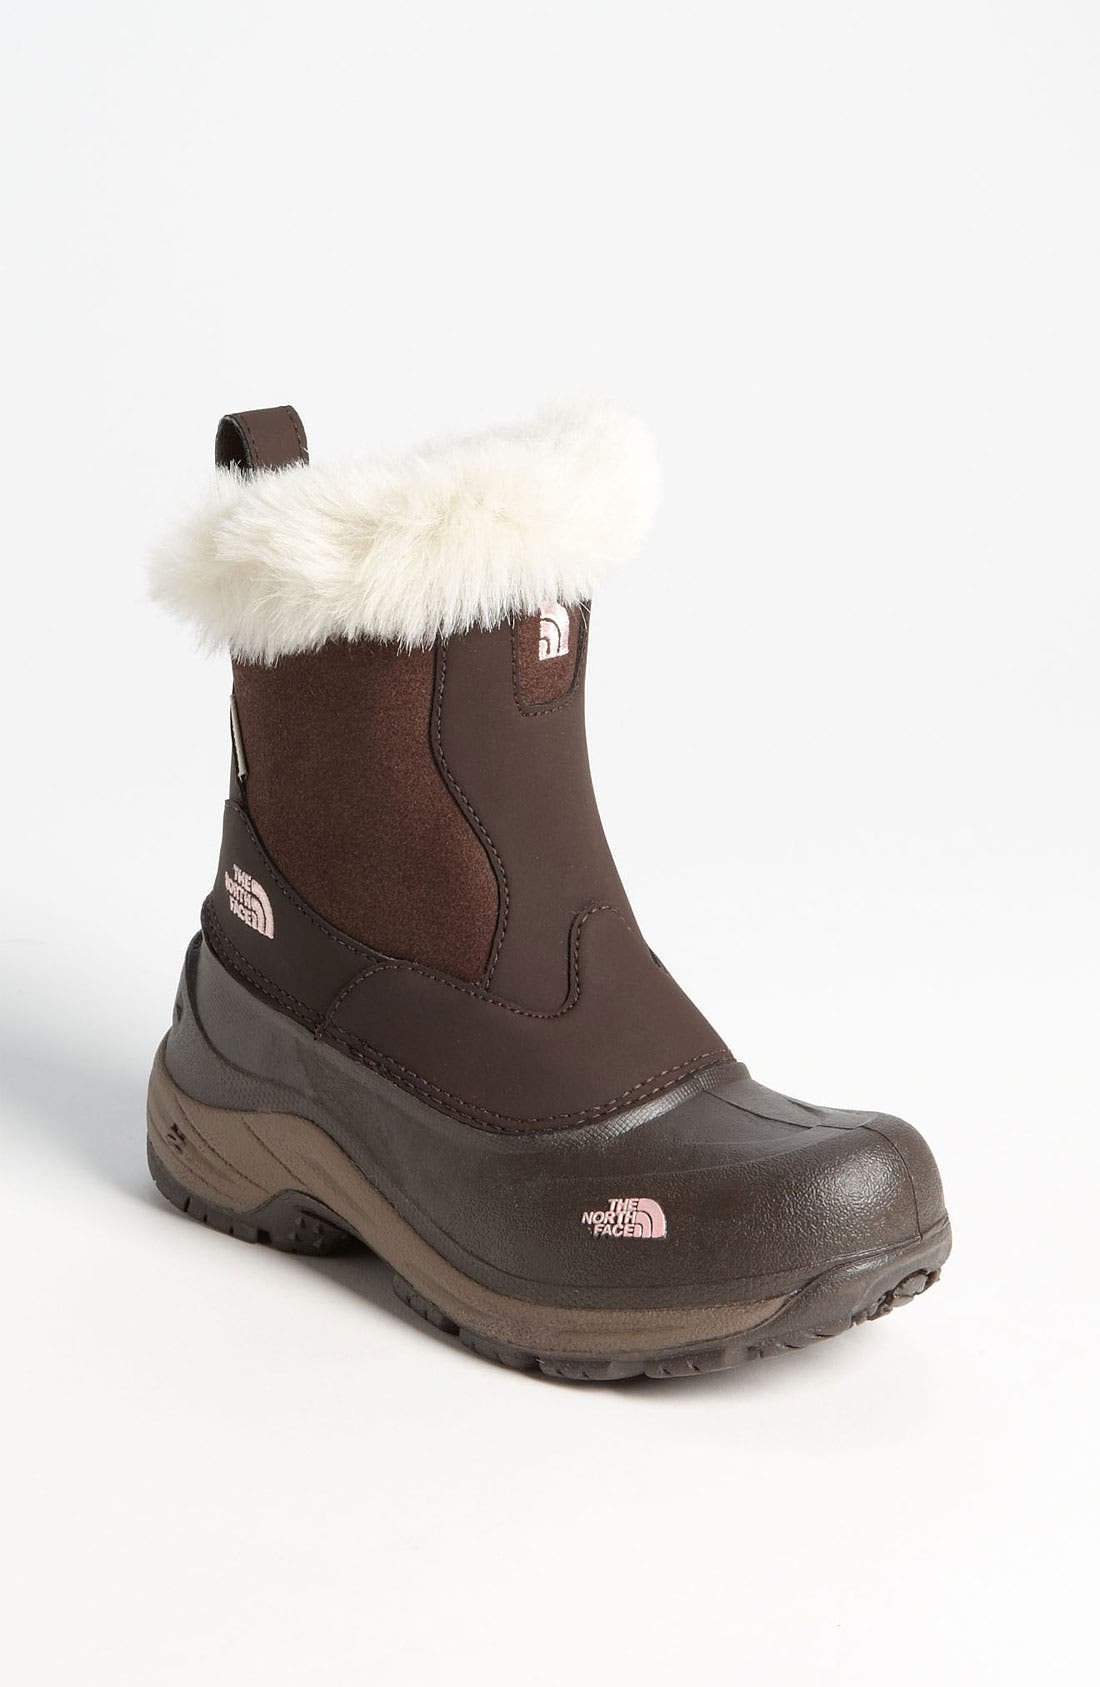 Alternate Image 1 Selected - The North Face 'Greenland' Boot (Little Kid & Big Kid)